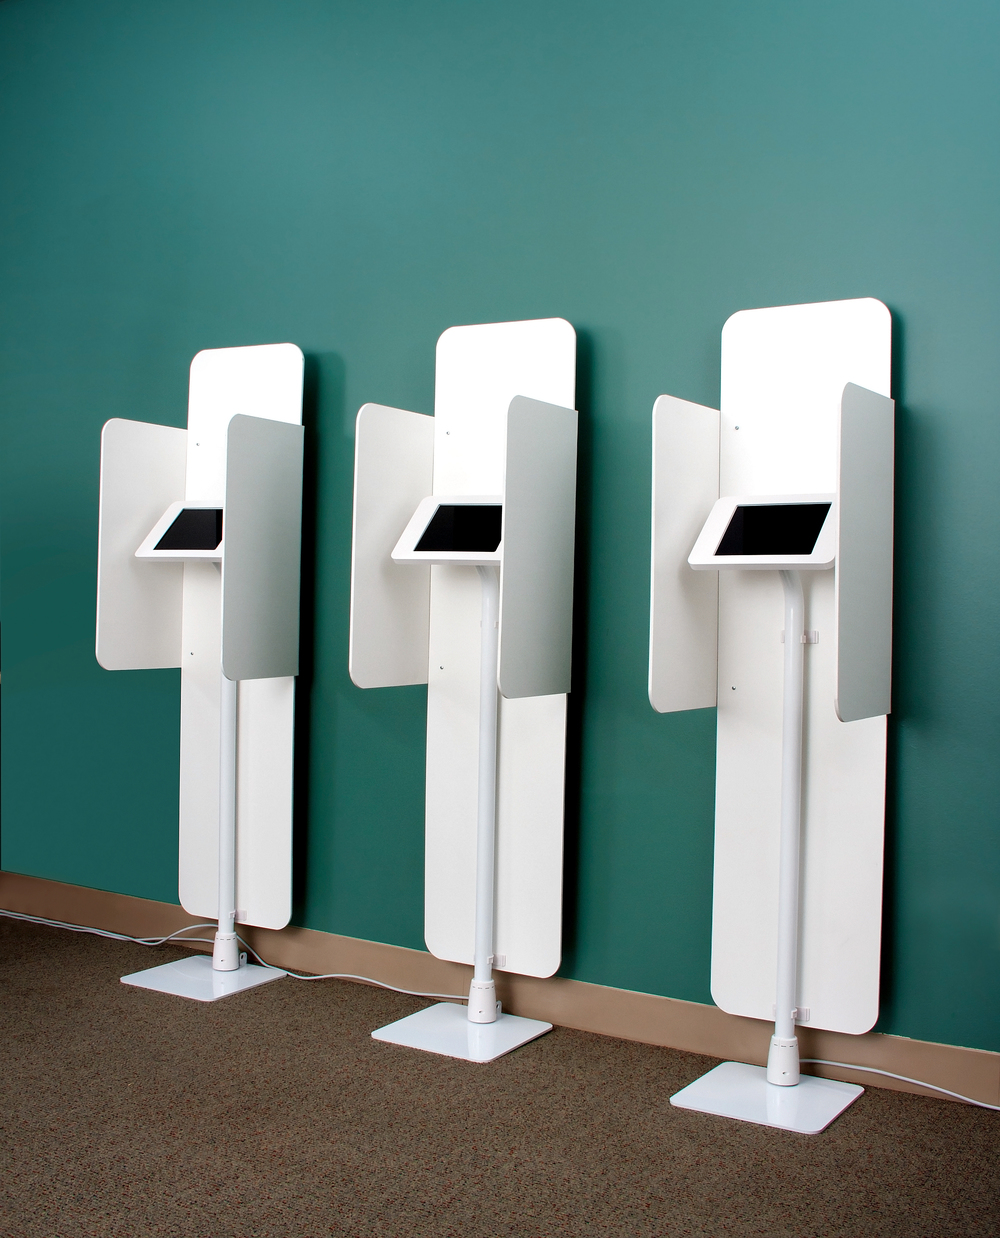 eLect™ Voting Unit for In-Person Voting